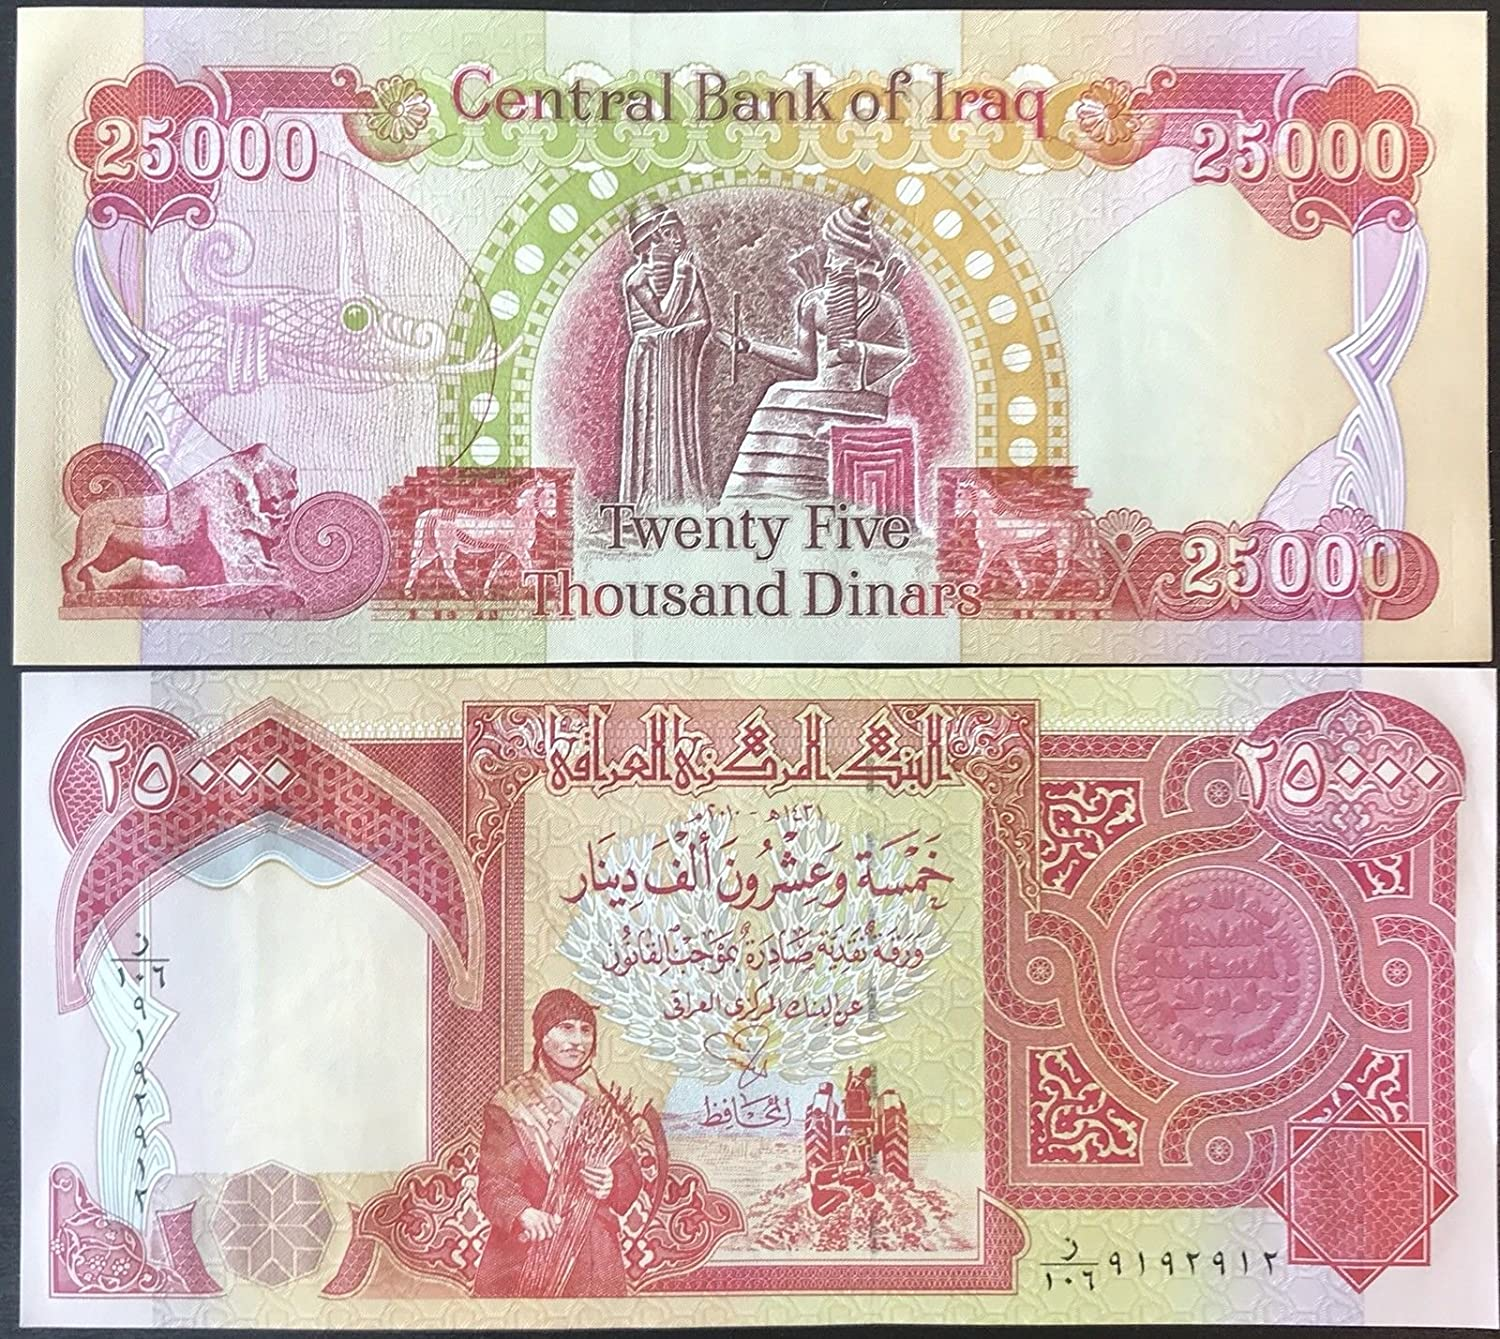 Iraq Dinar 25000 Uncirculated Mint Crisp Condition